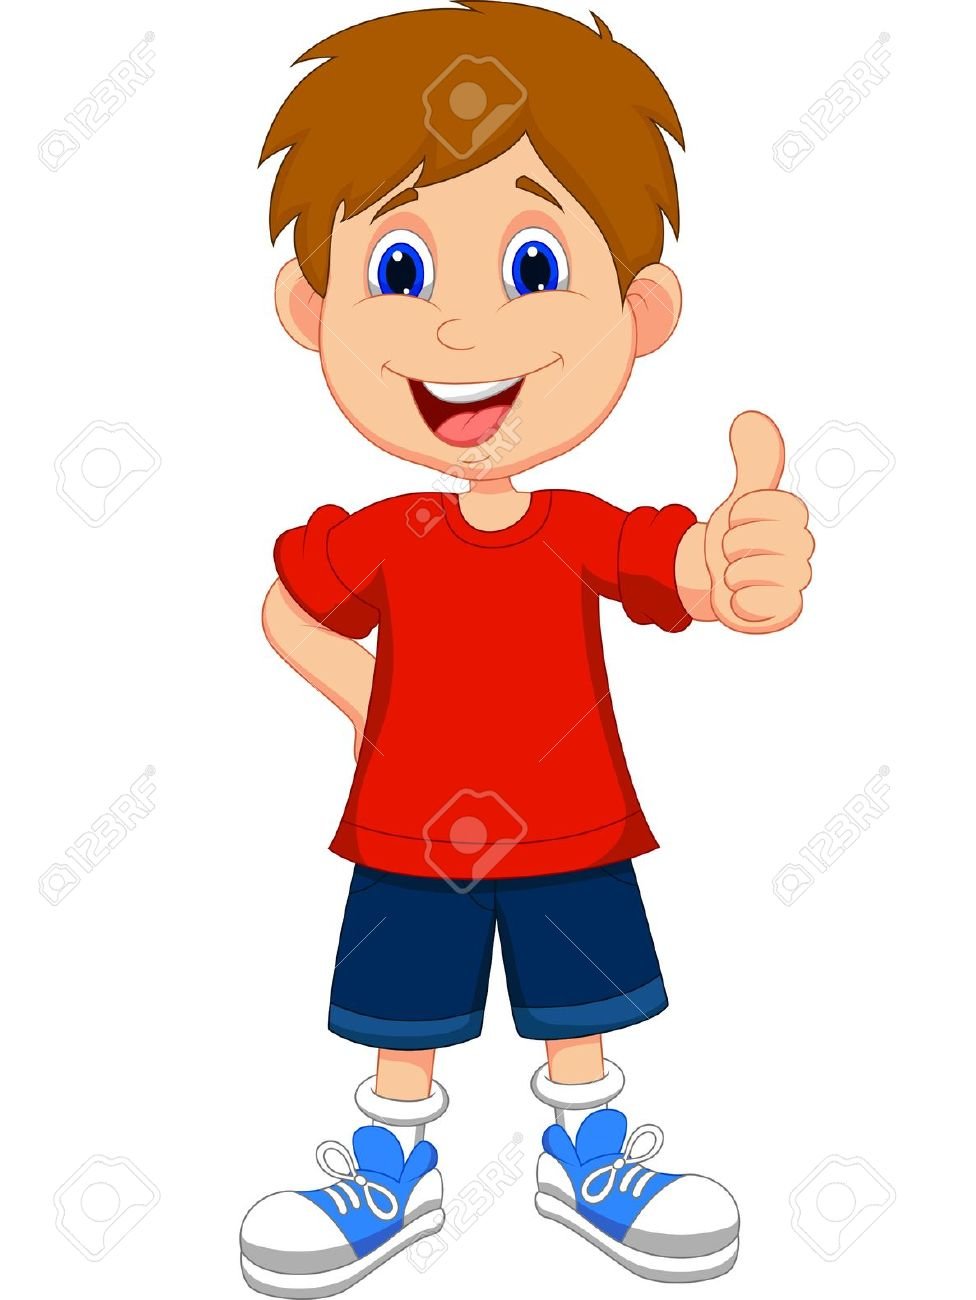 Boy thumbs up clipart picture library library Thumbs up kid clipart - ClipartFest picture library library